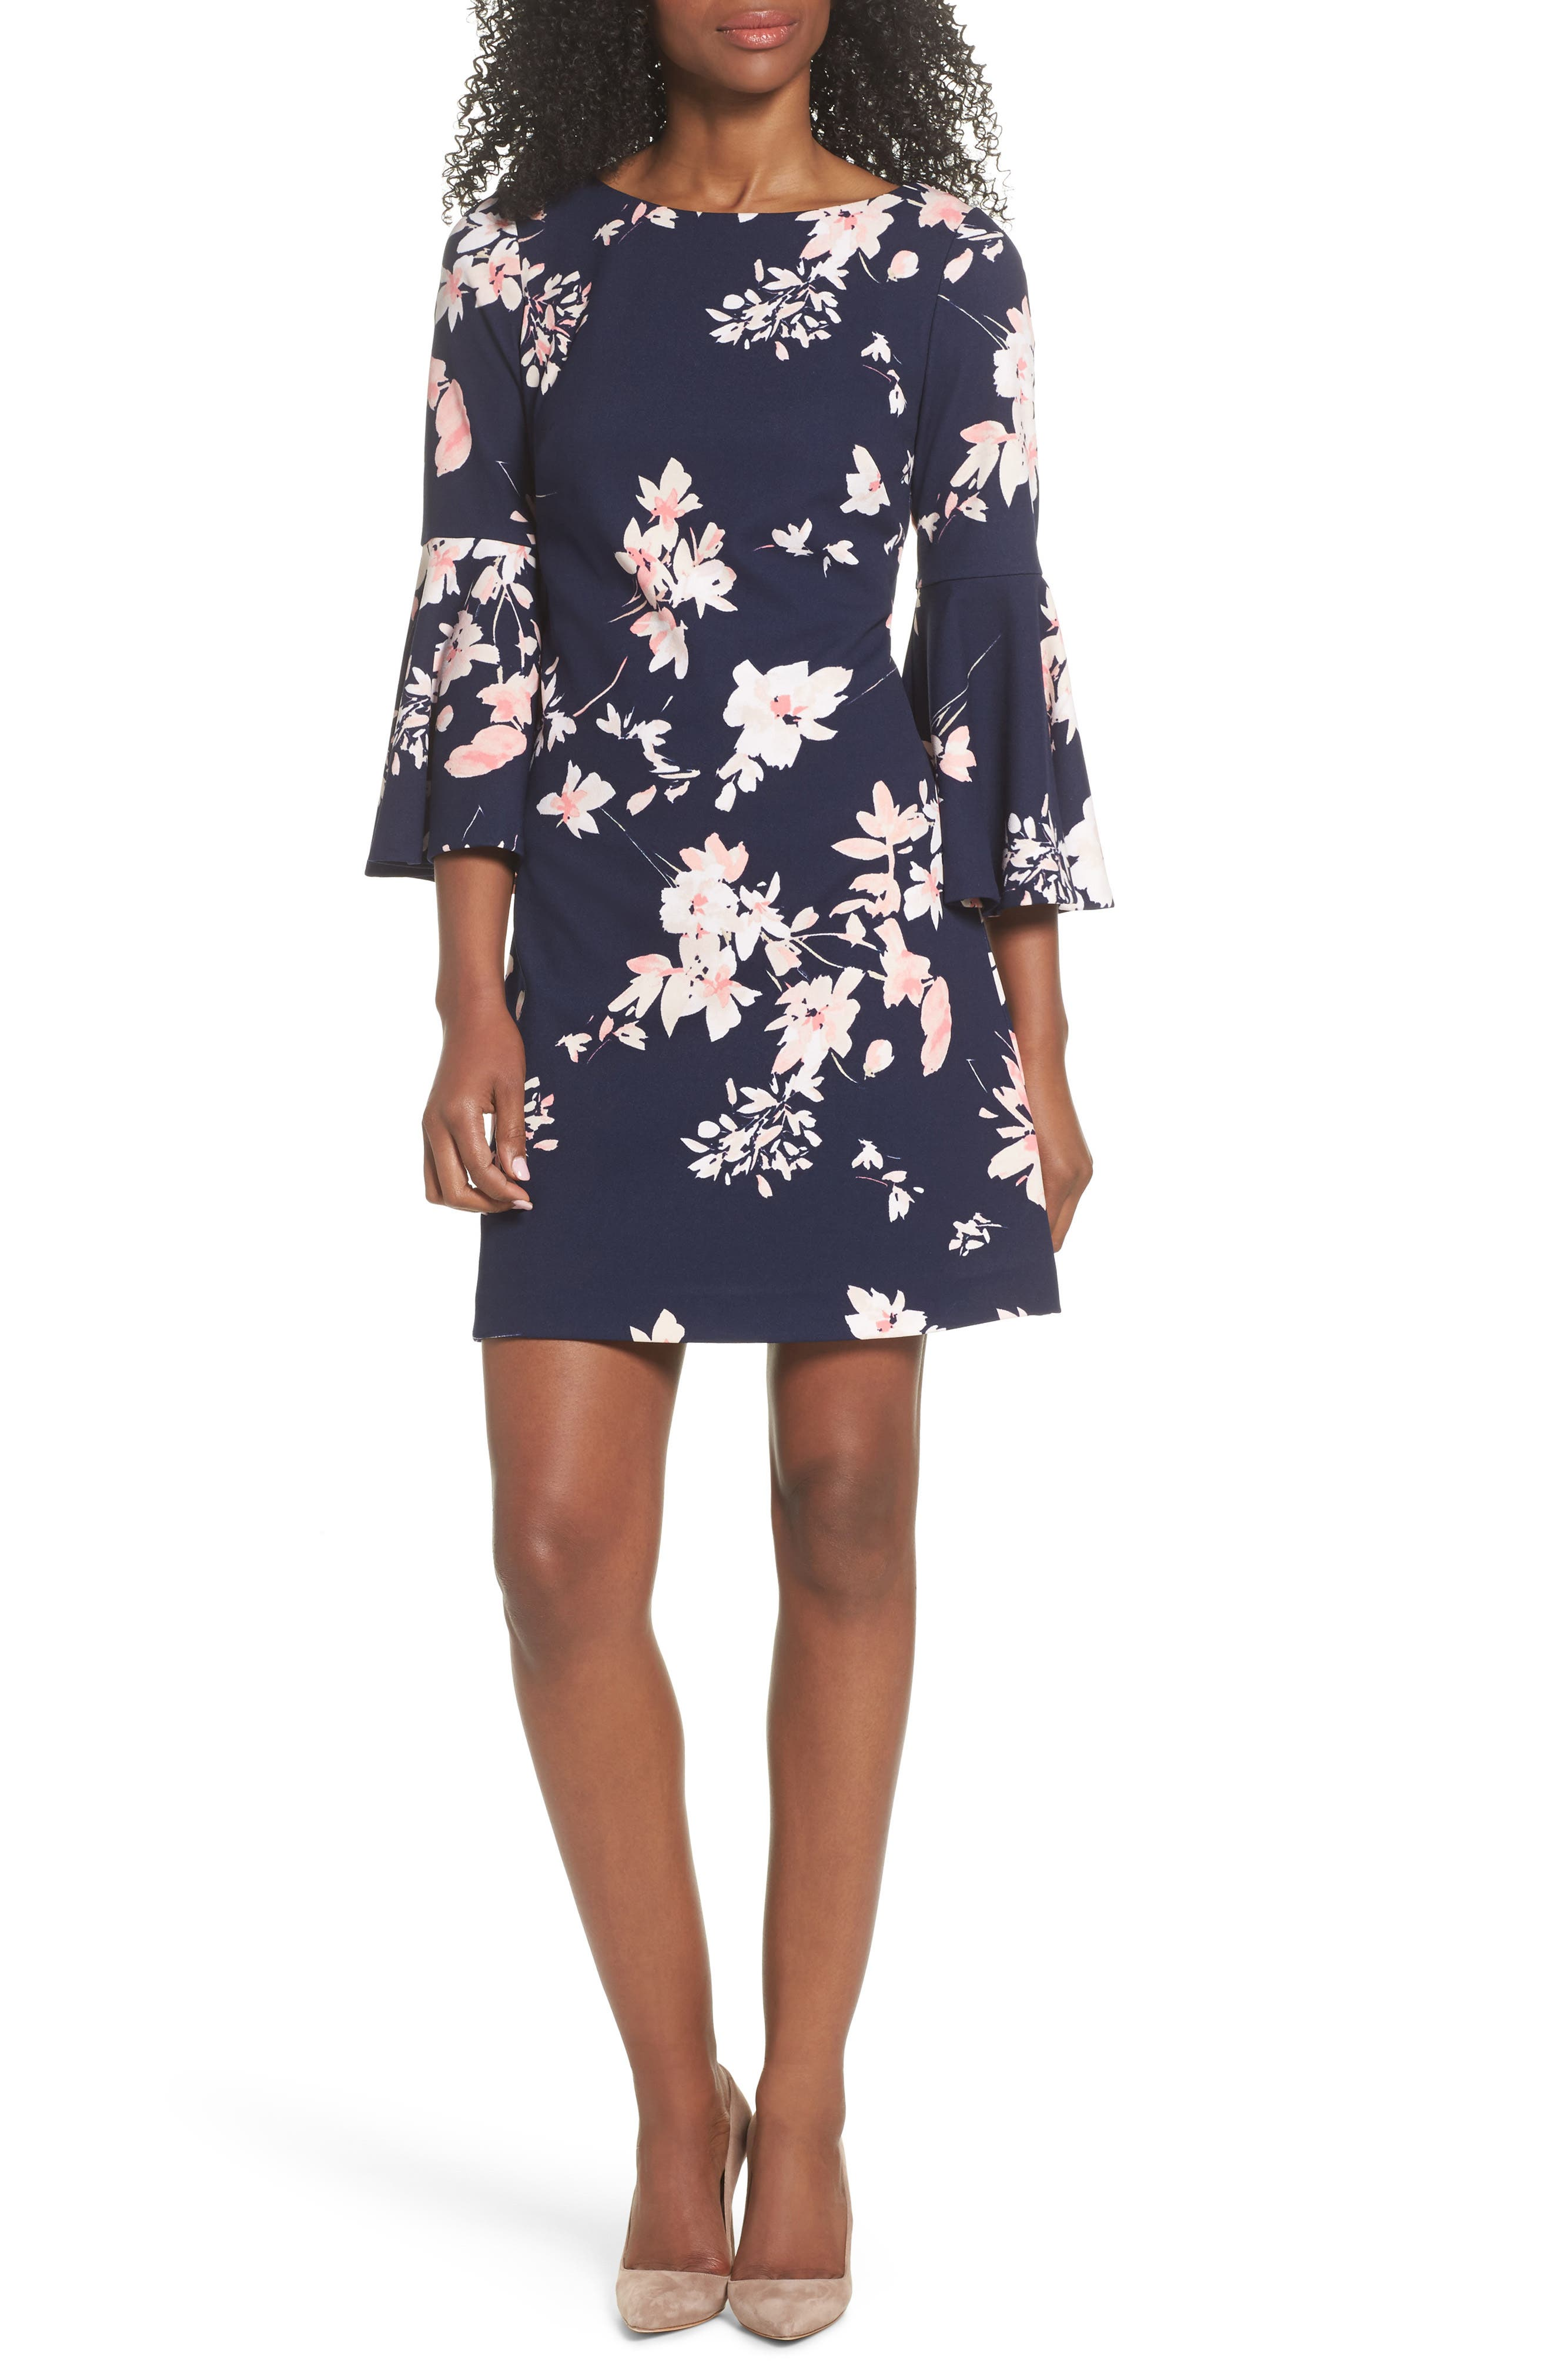 ELIZA J Floral Bell Sleeve Dress, Main, color, NAVY/PINK